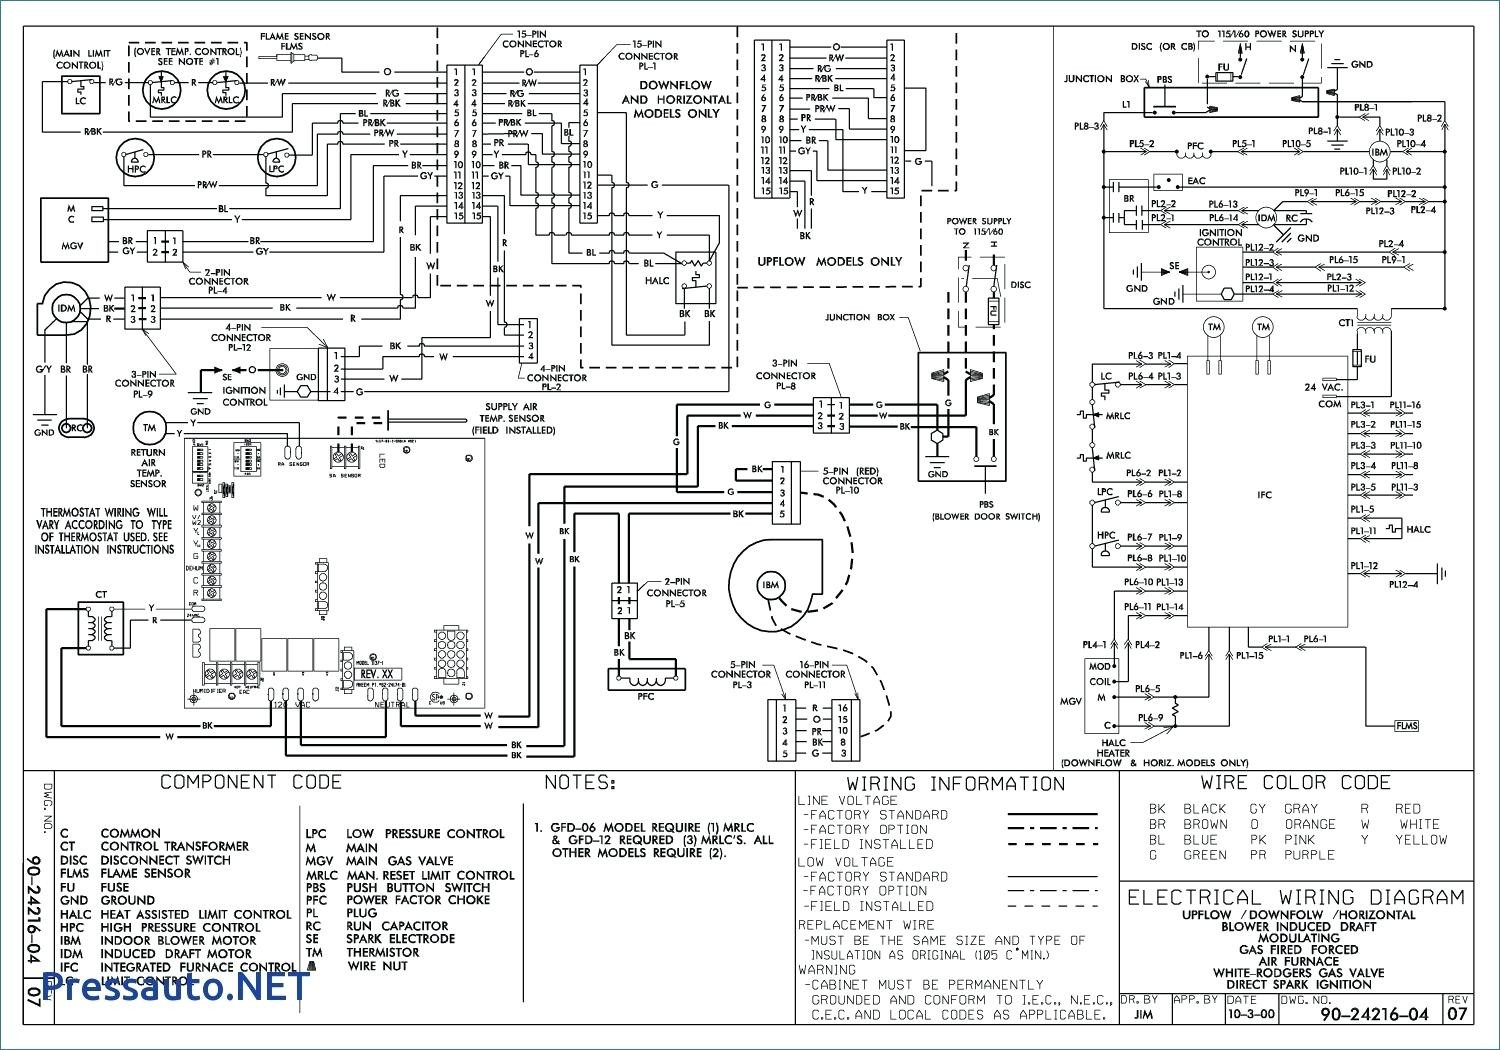 Goodman Air Conditioning Wiring Diagram